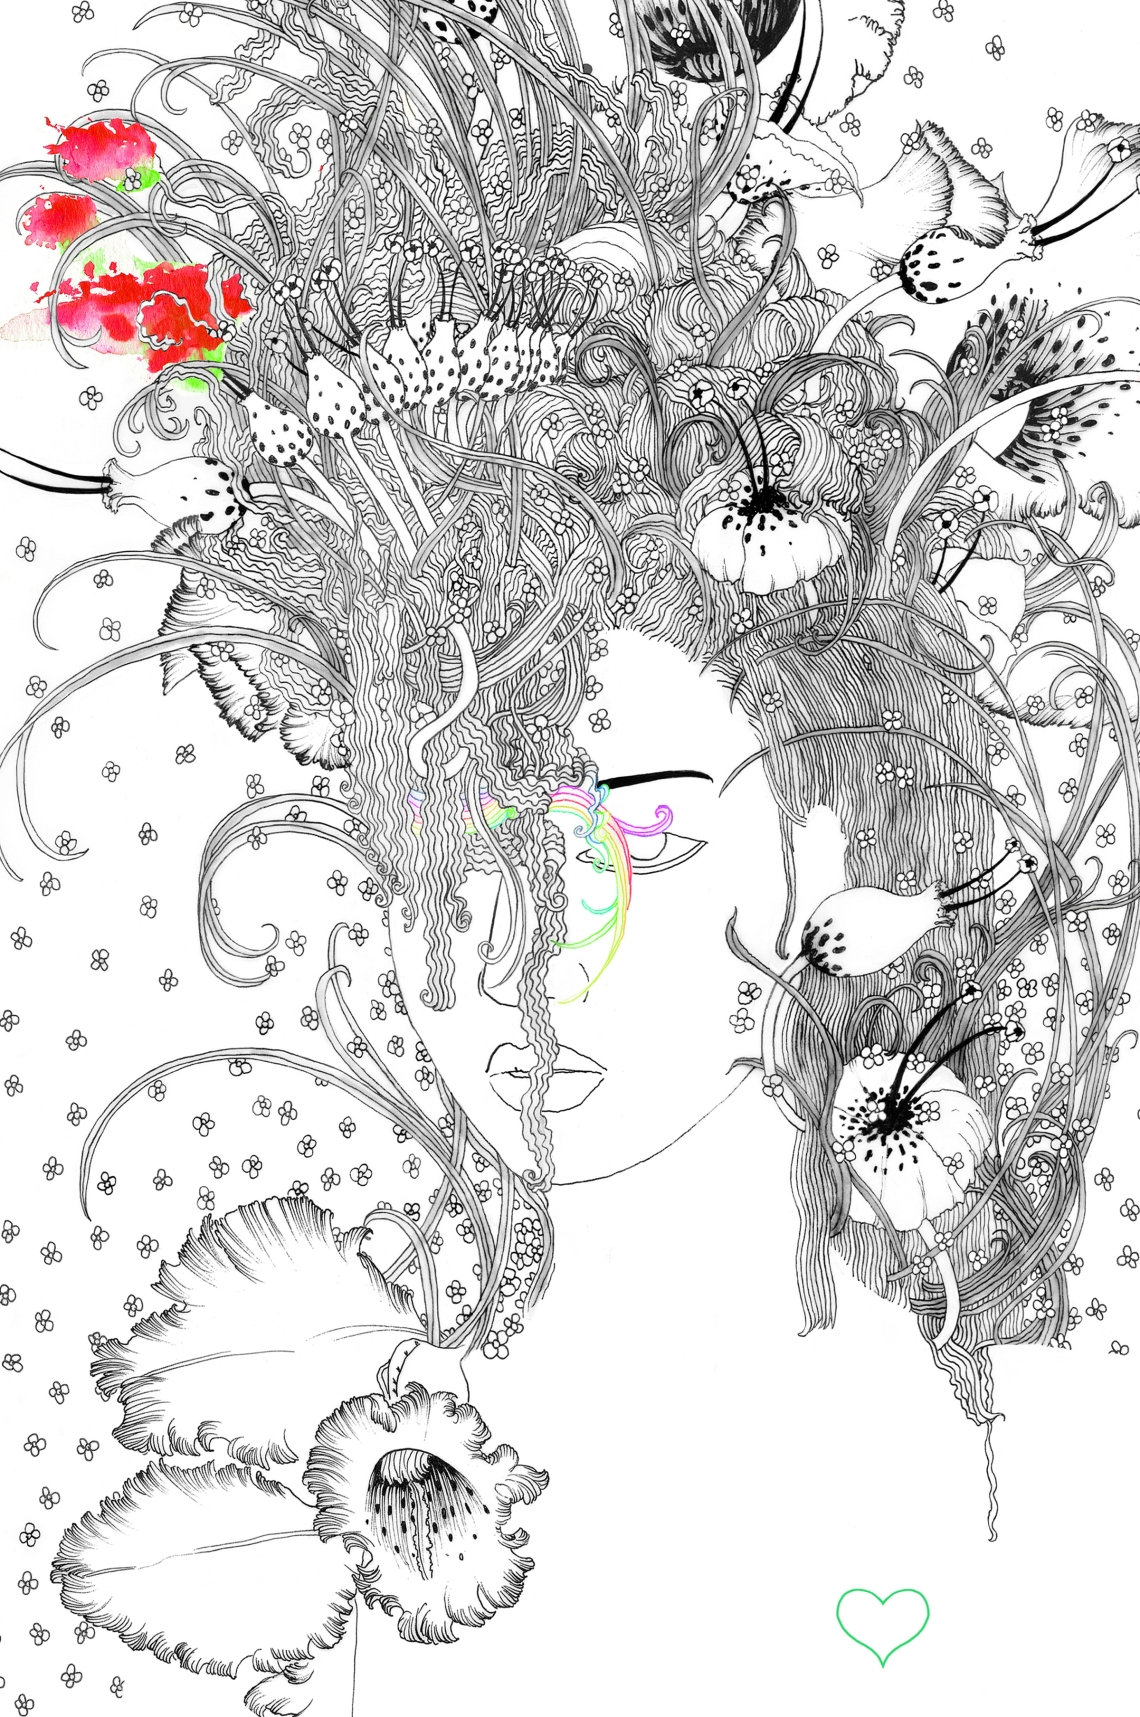 #LuisaViaRoma #refined #illustration #drawing #noumeda #art #print #limited #edition #shop #home #decor #inspiredbynature #flowers intricate #refined